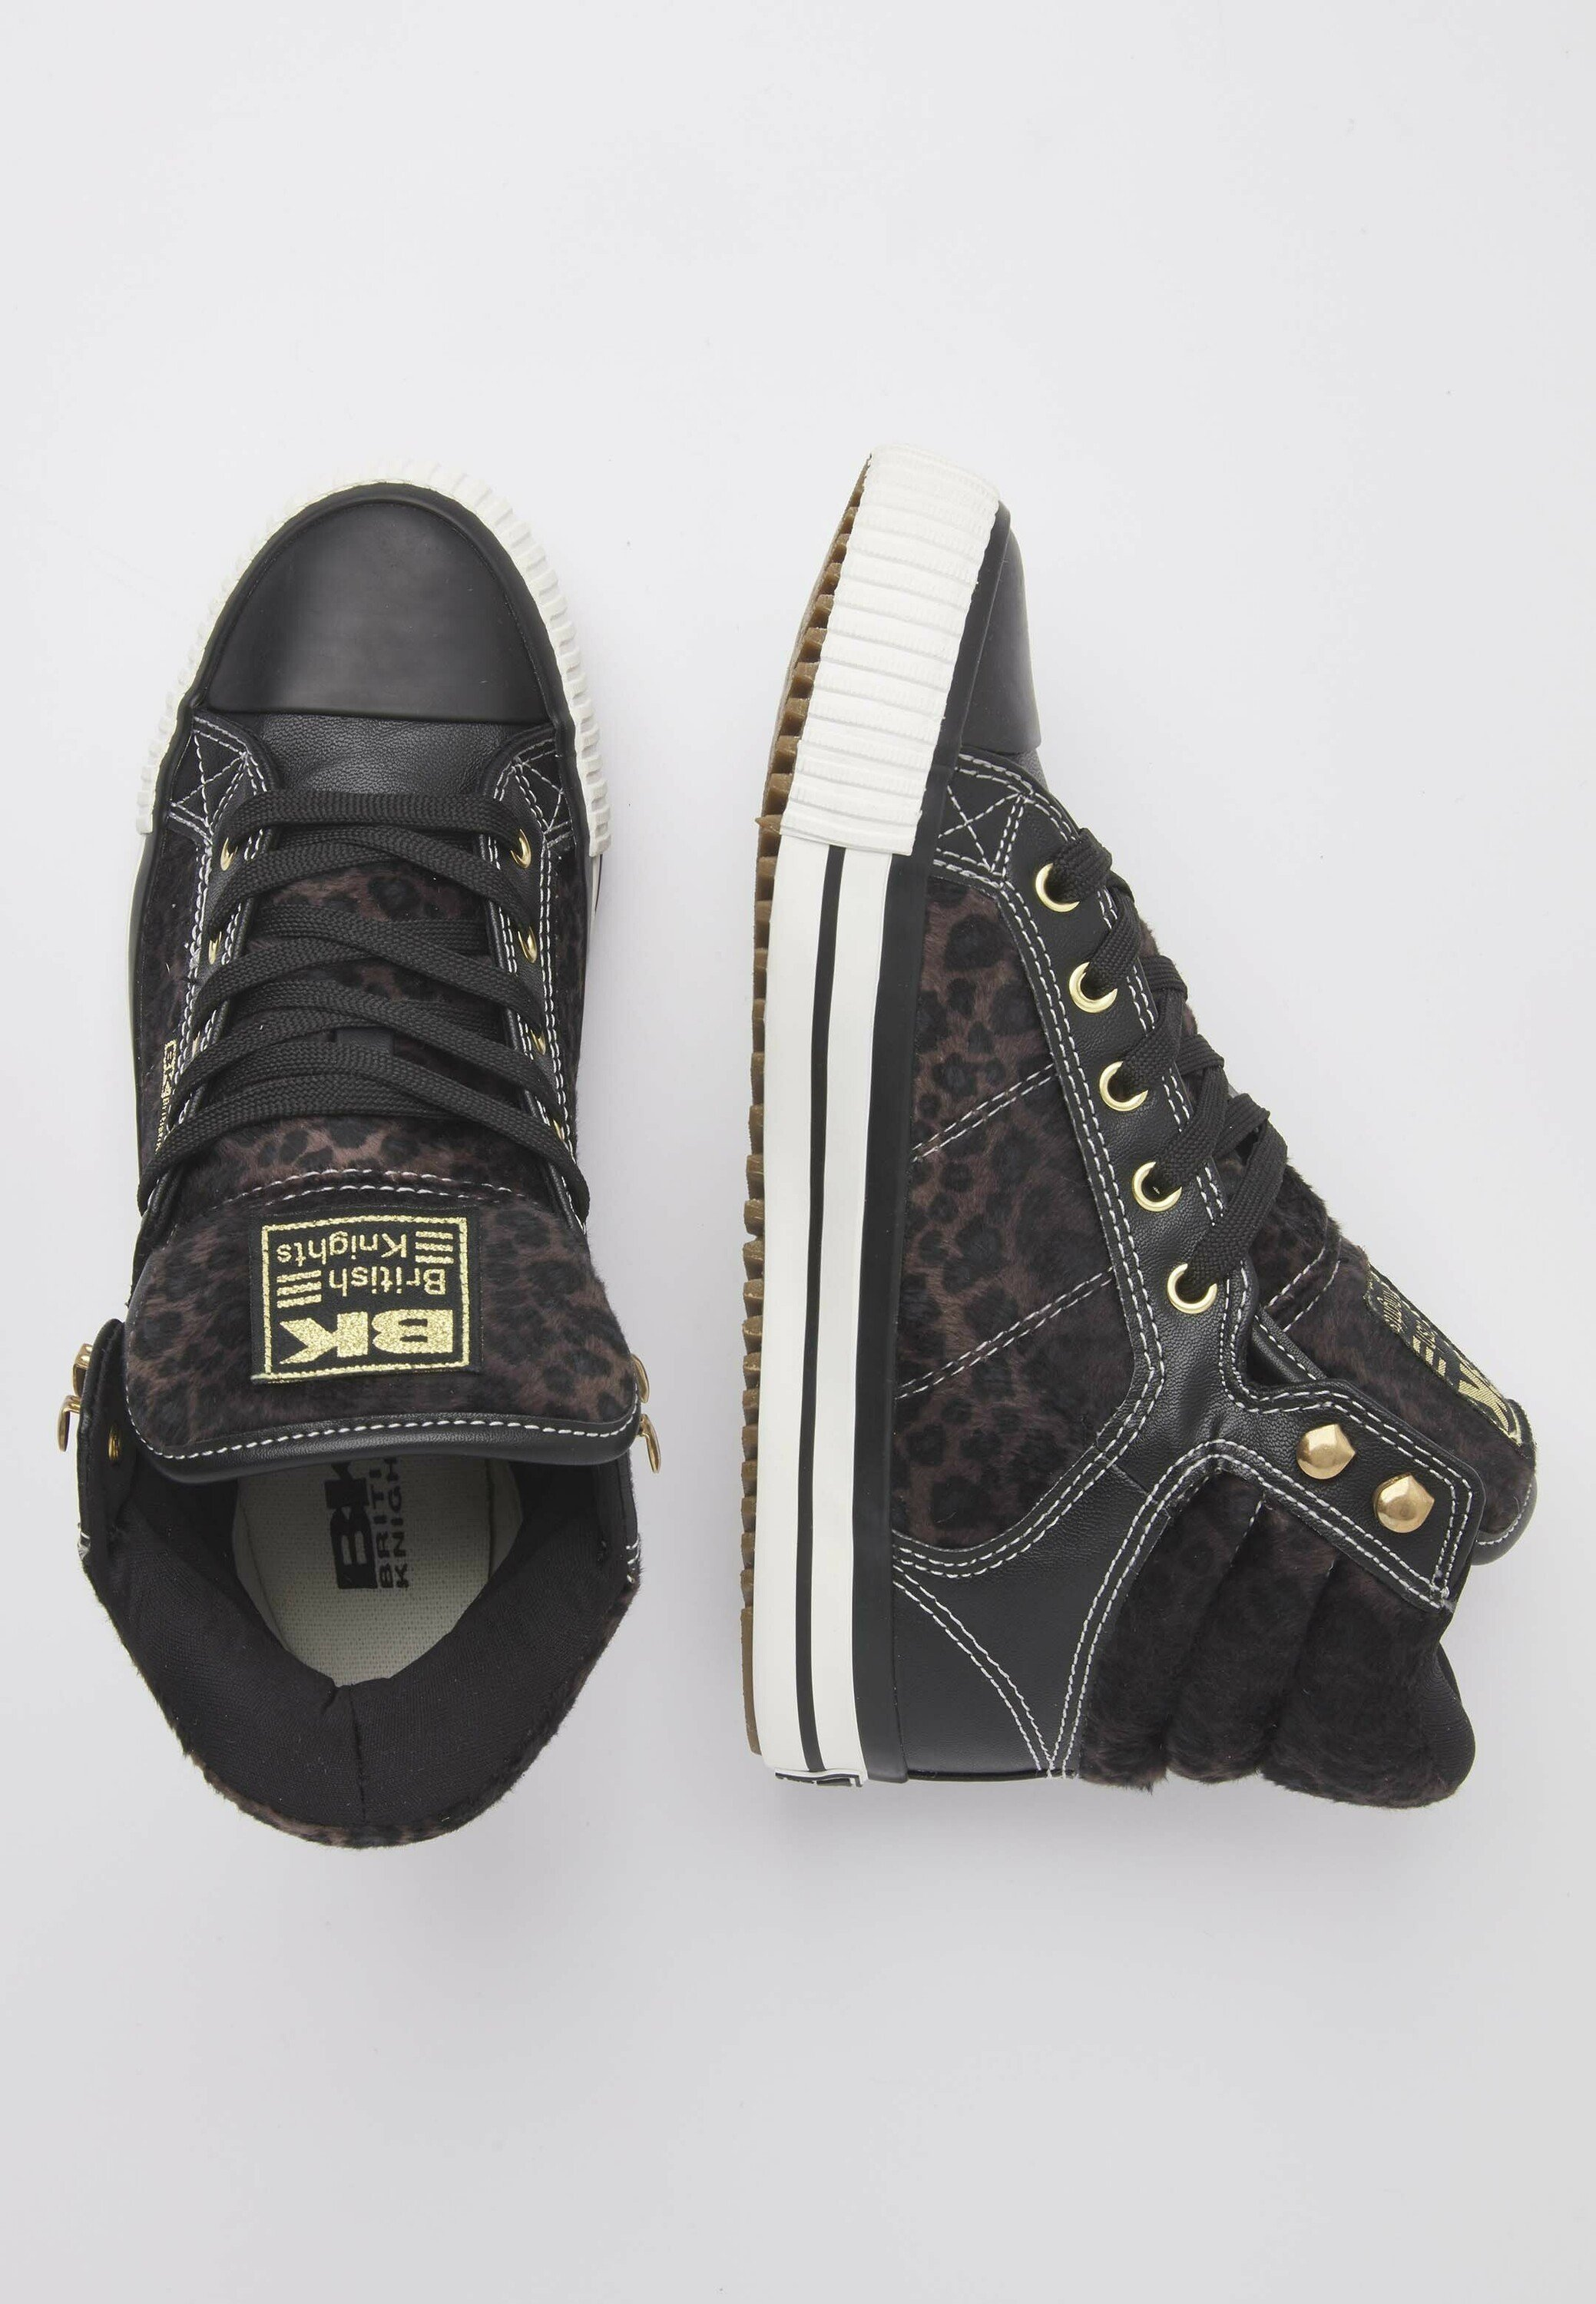 British Knights ATOLL Sneaker high dk grey leopard/black/dunkelgrau